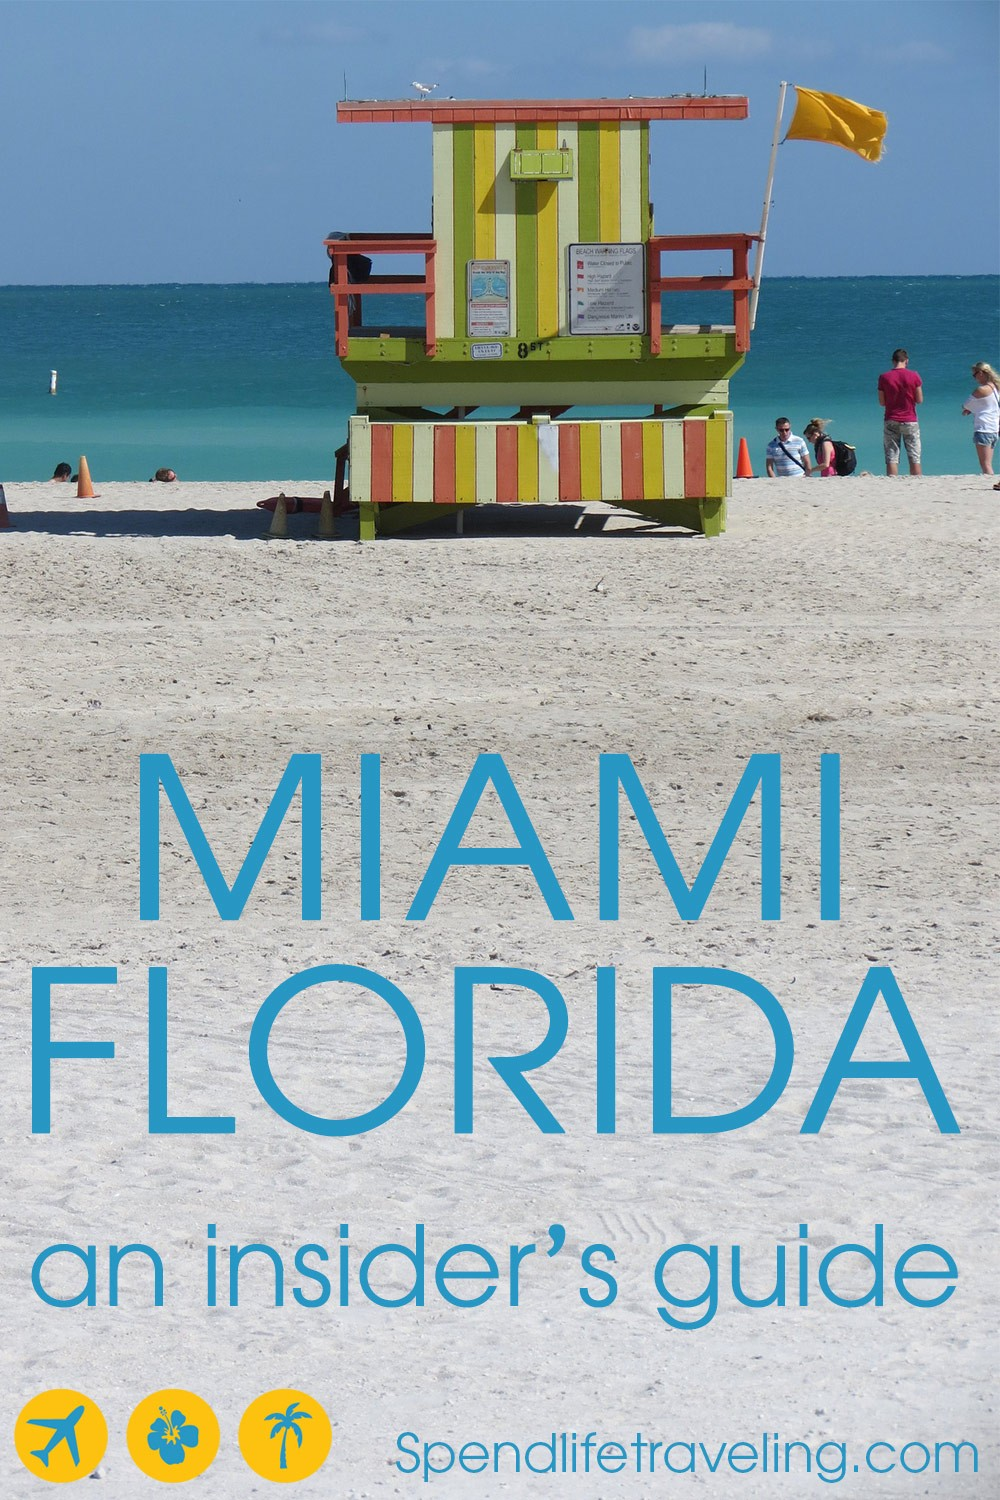 A complete travel guide for Miami with tips from an insider about what to do, where to eat and where to stay.